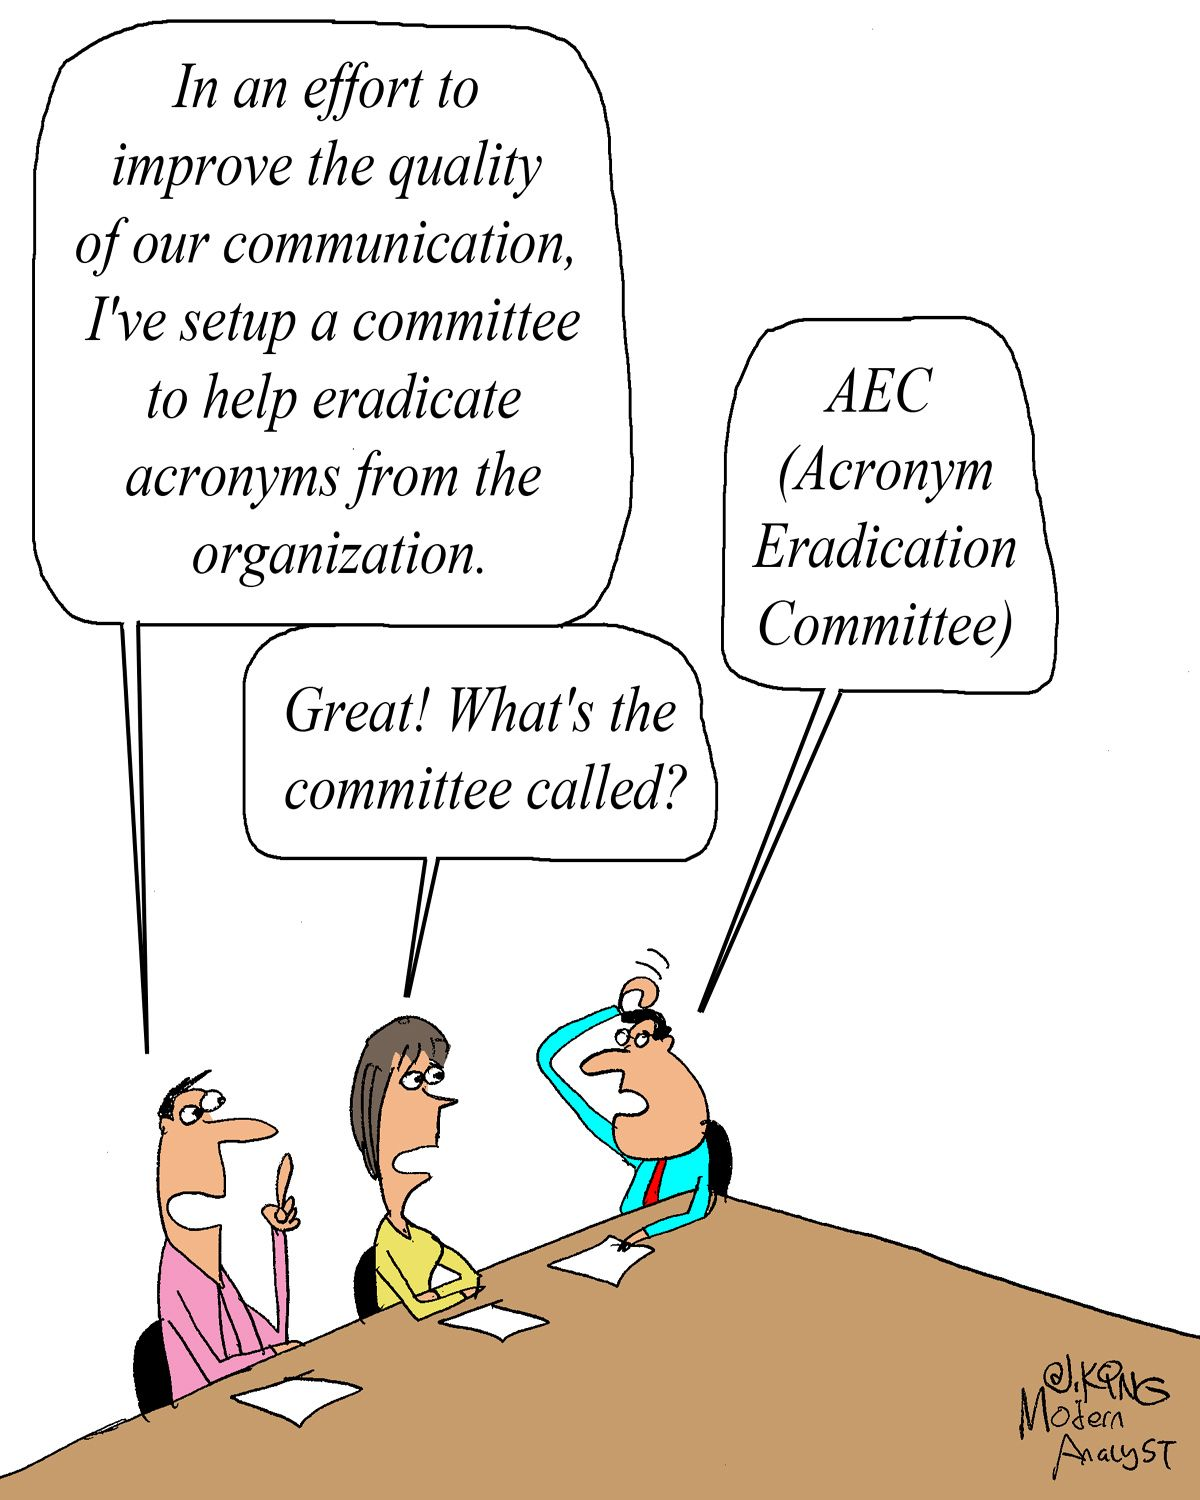 Humor Cartoon Acronym Eradication Committee Business Analyst